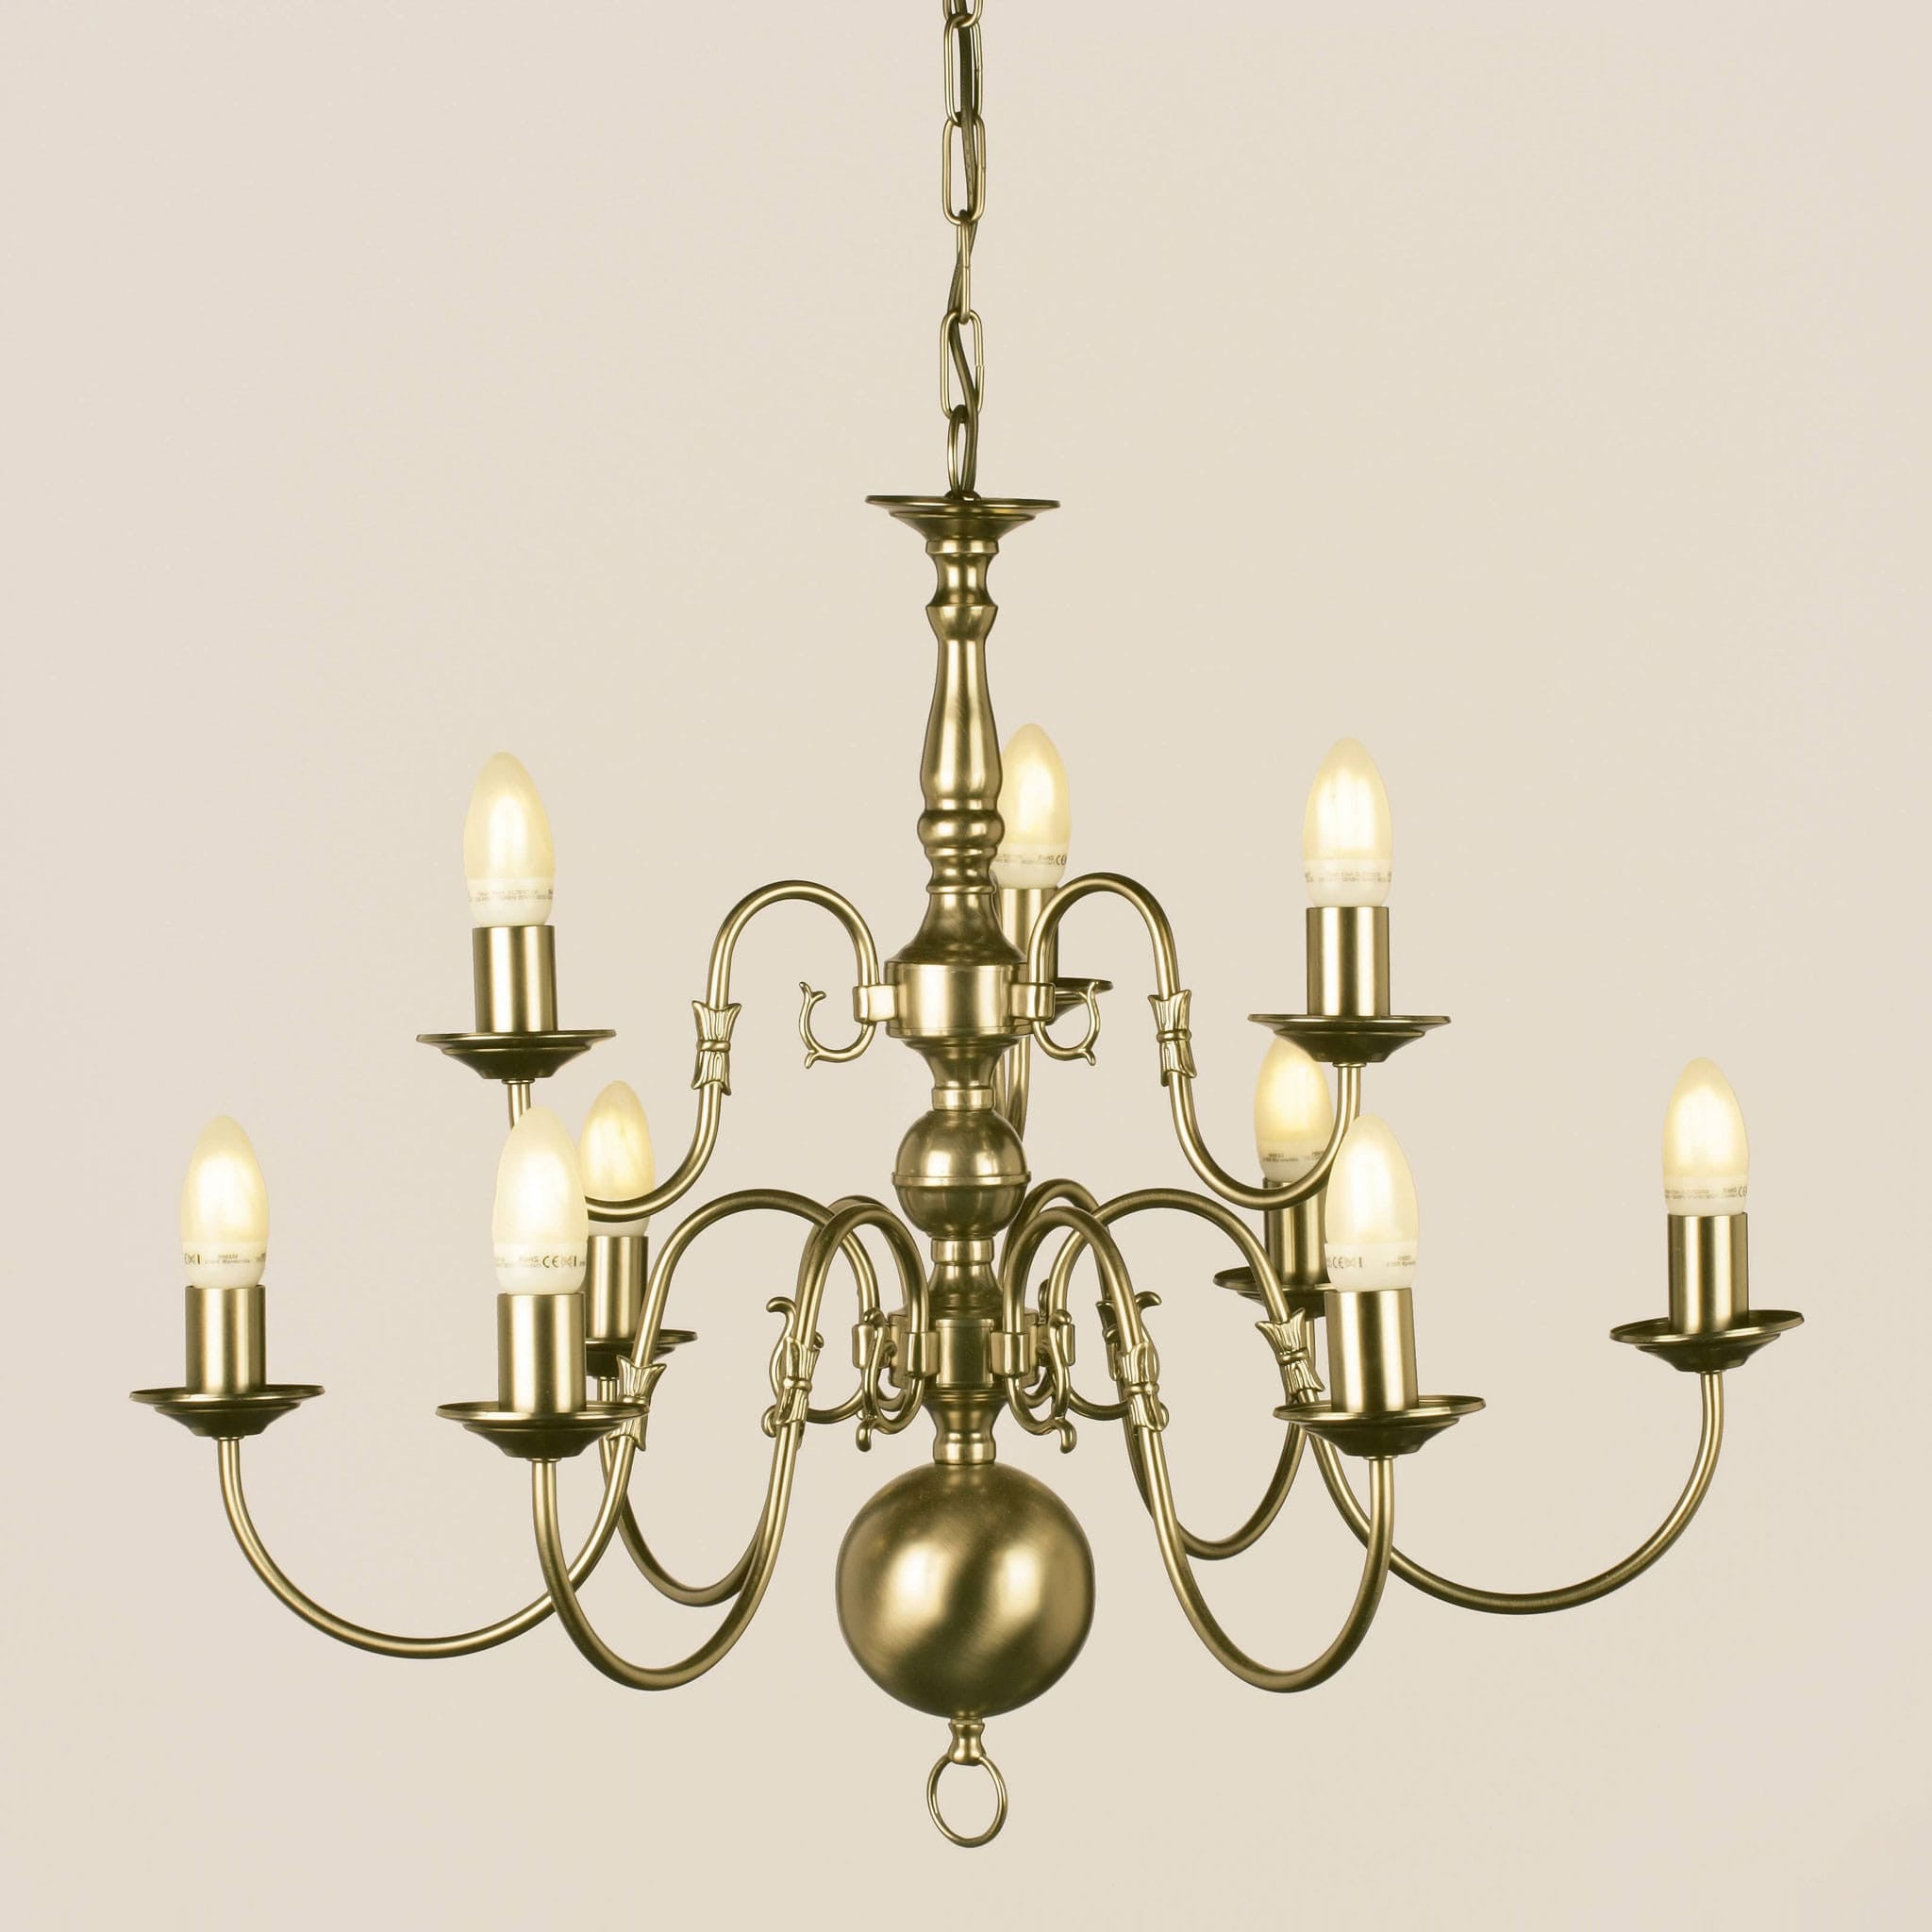 century chandelier style for antique lighting vintage spanish iron chandeliers wrought sale